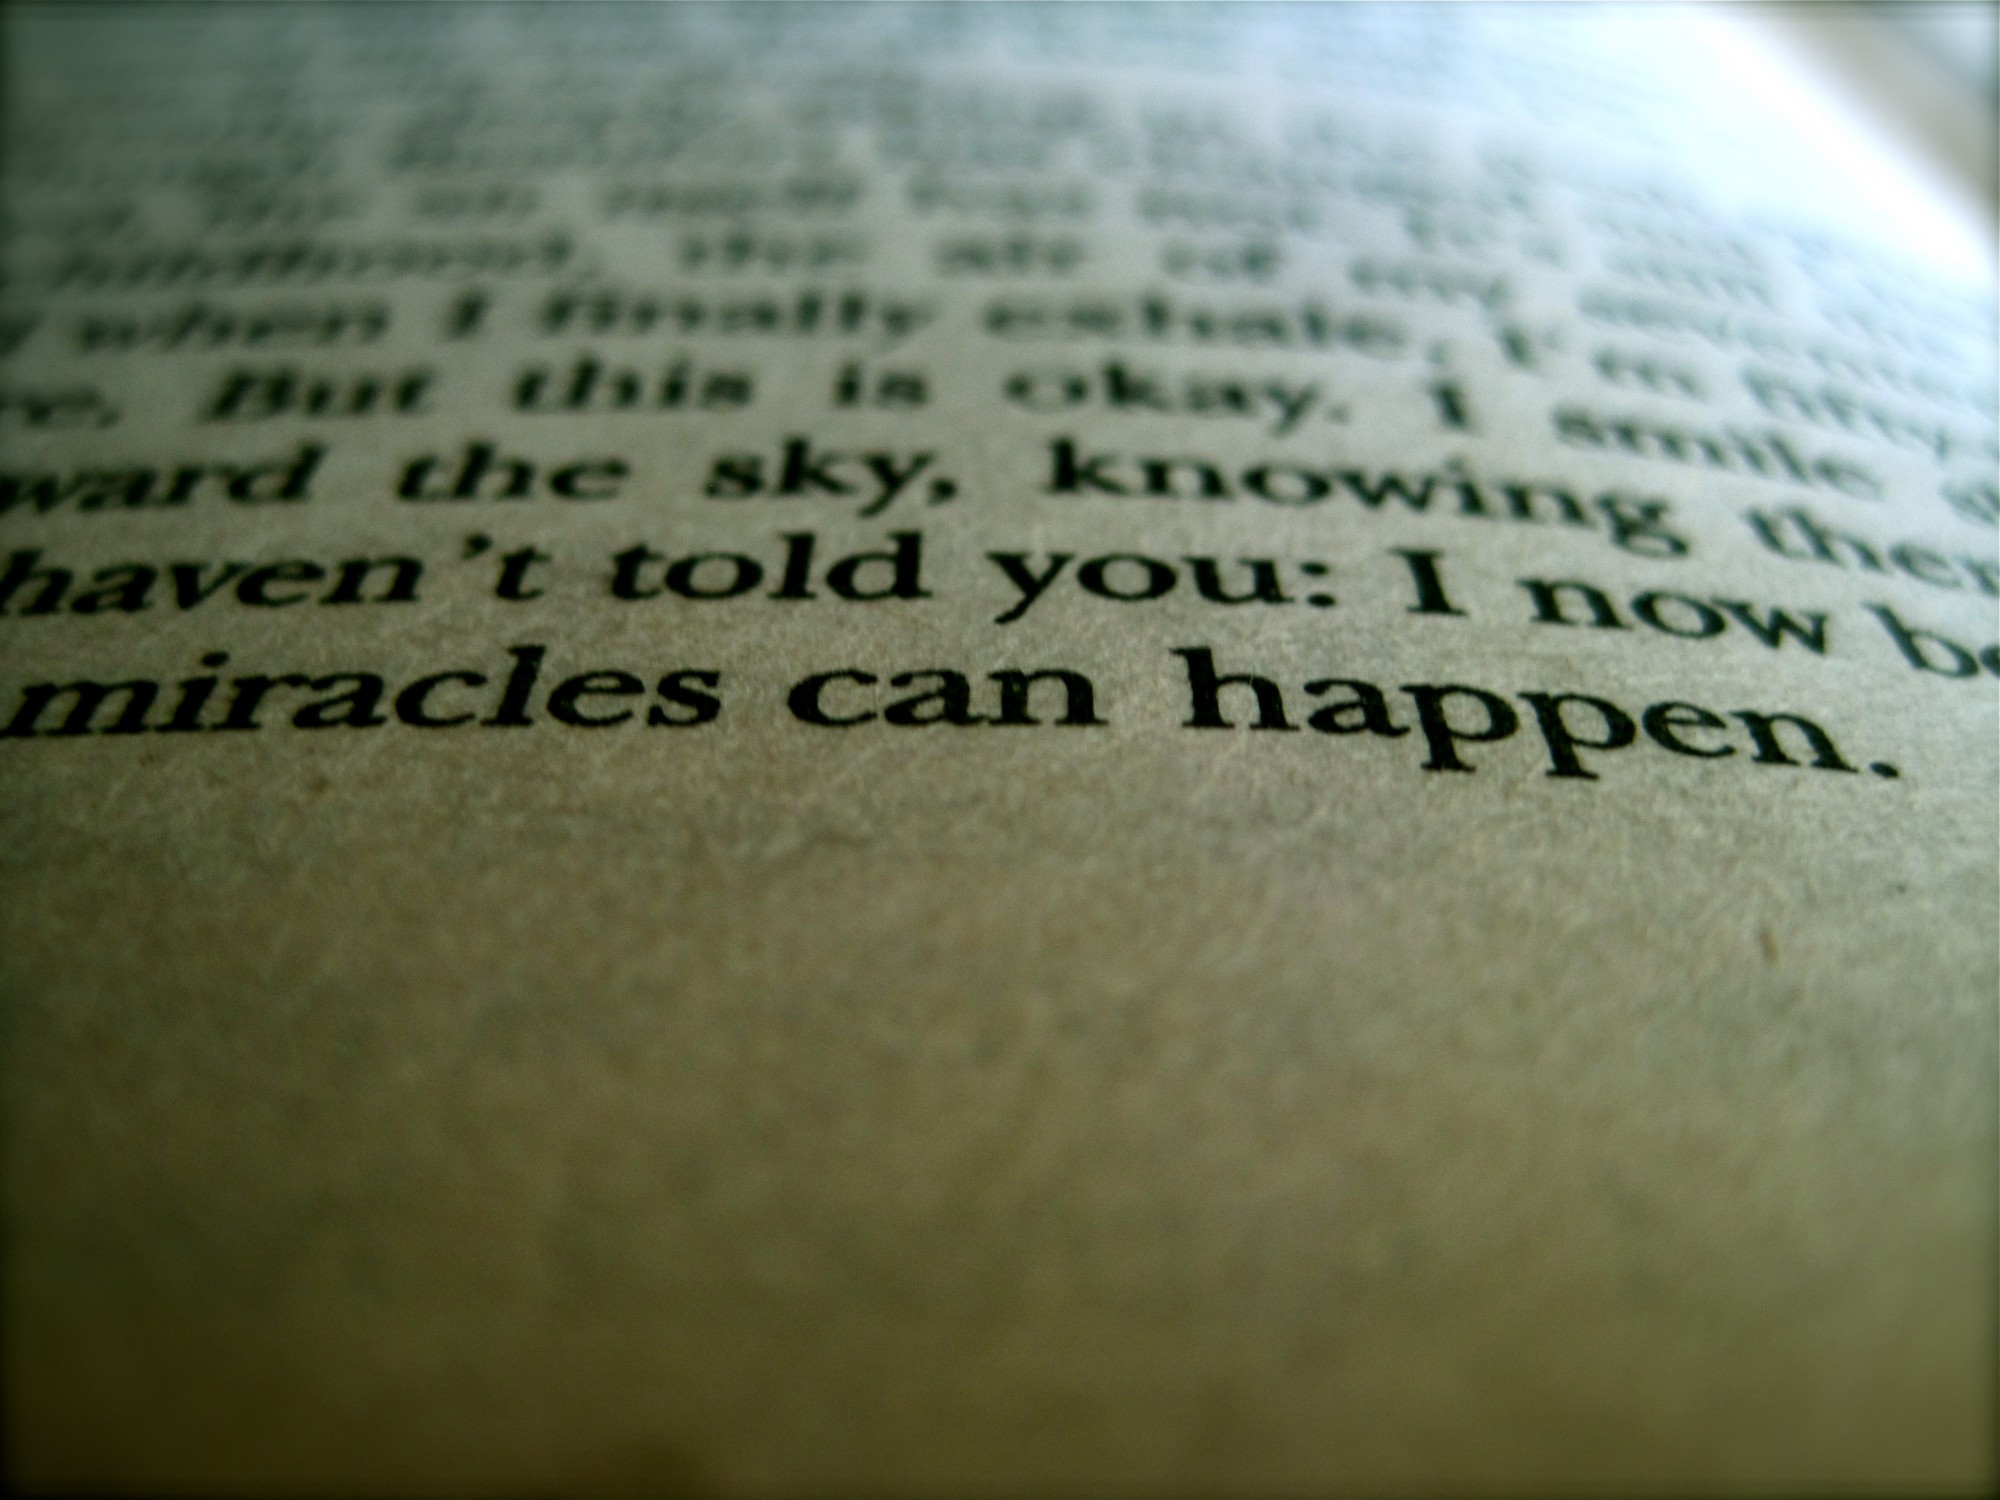 Miracles-can-happen-e1411916380431.jpg